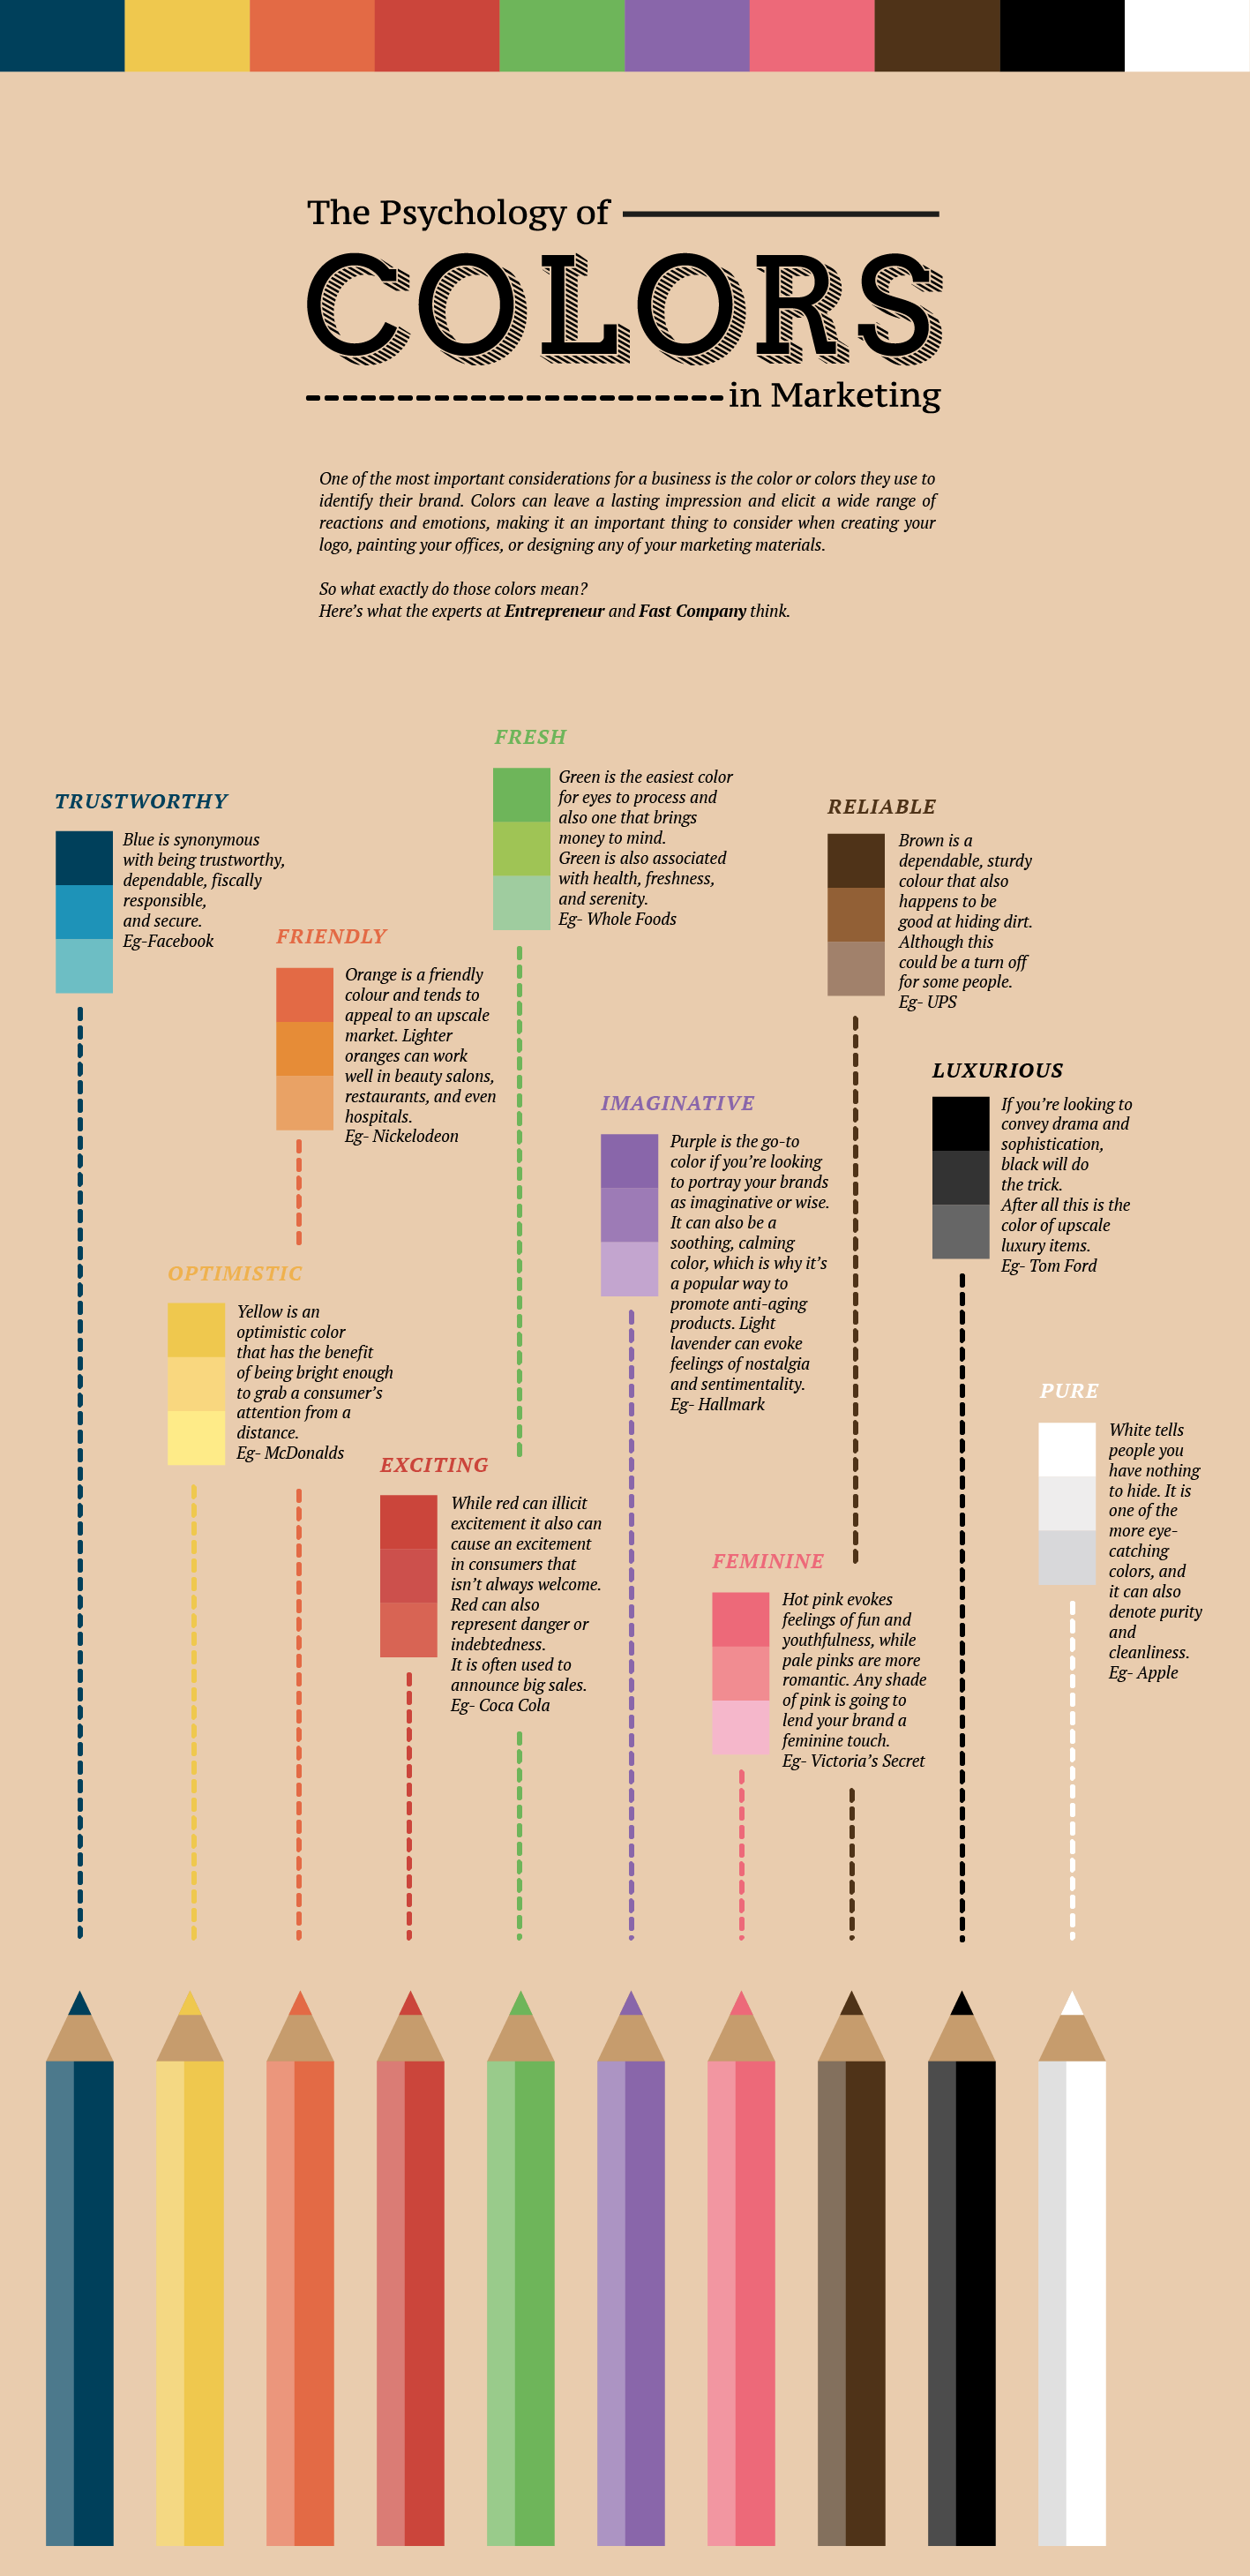 the psychology of colors pictures photos and images for